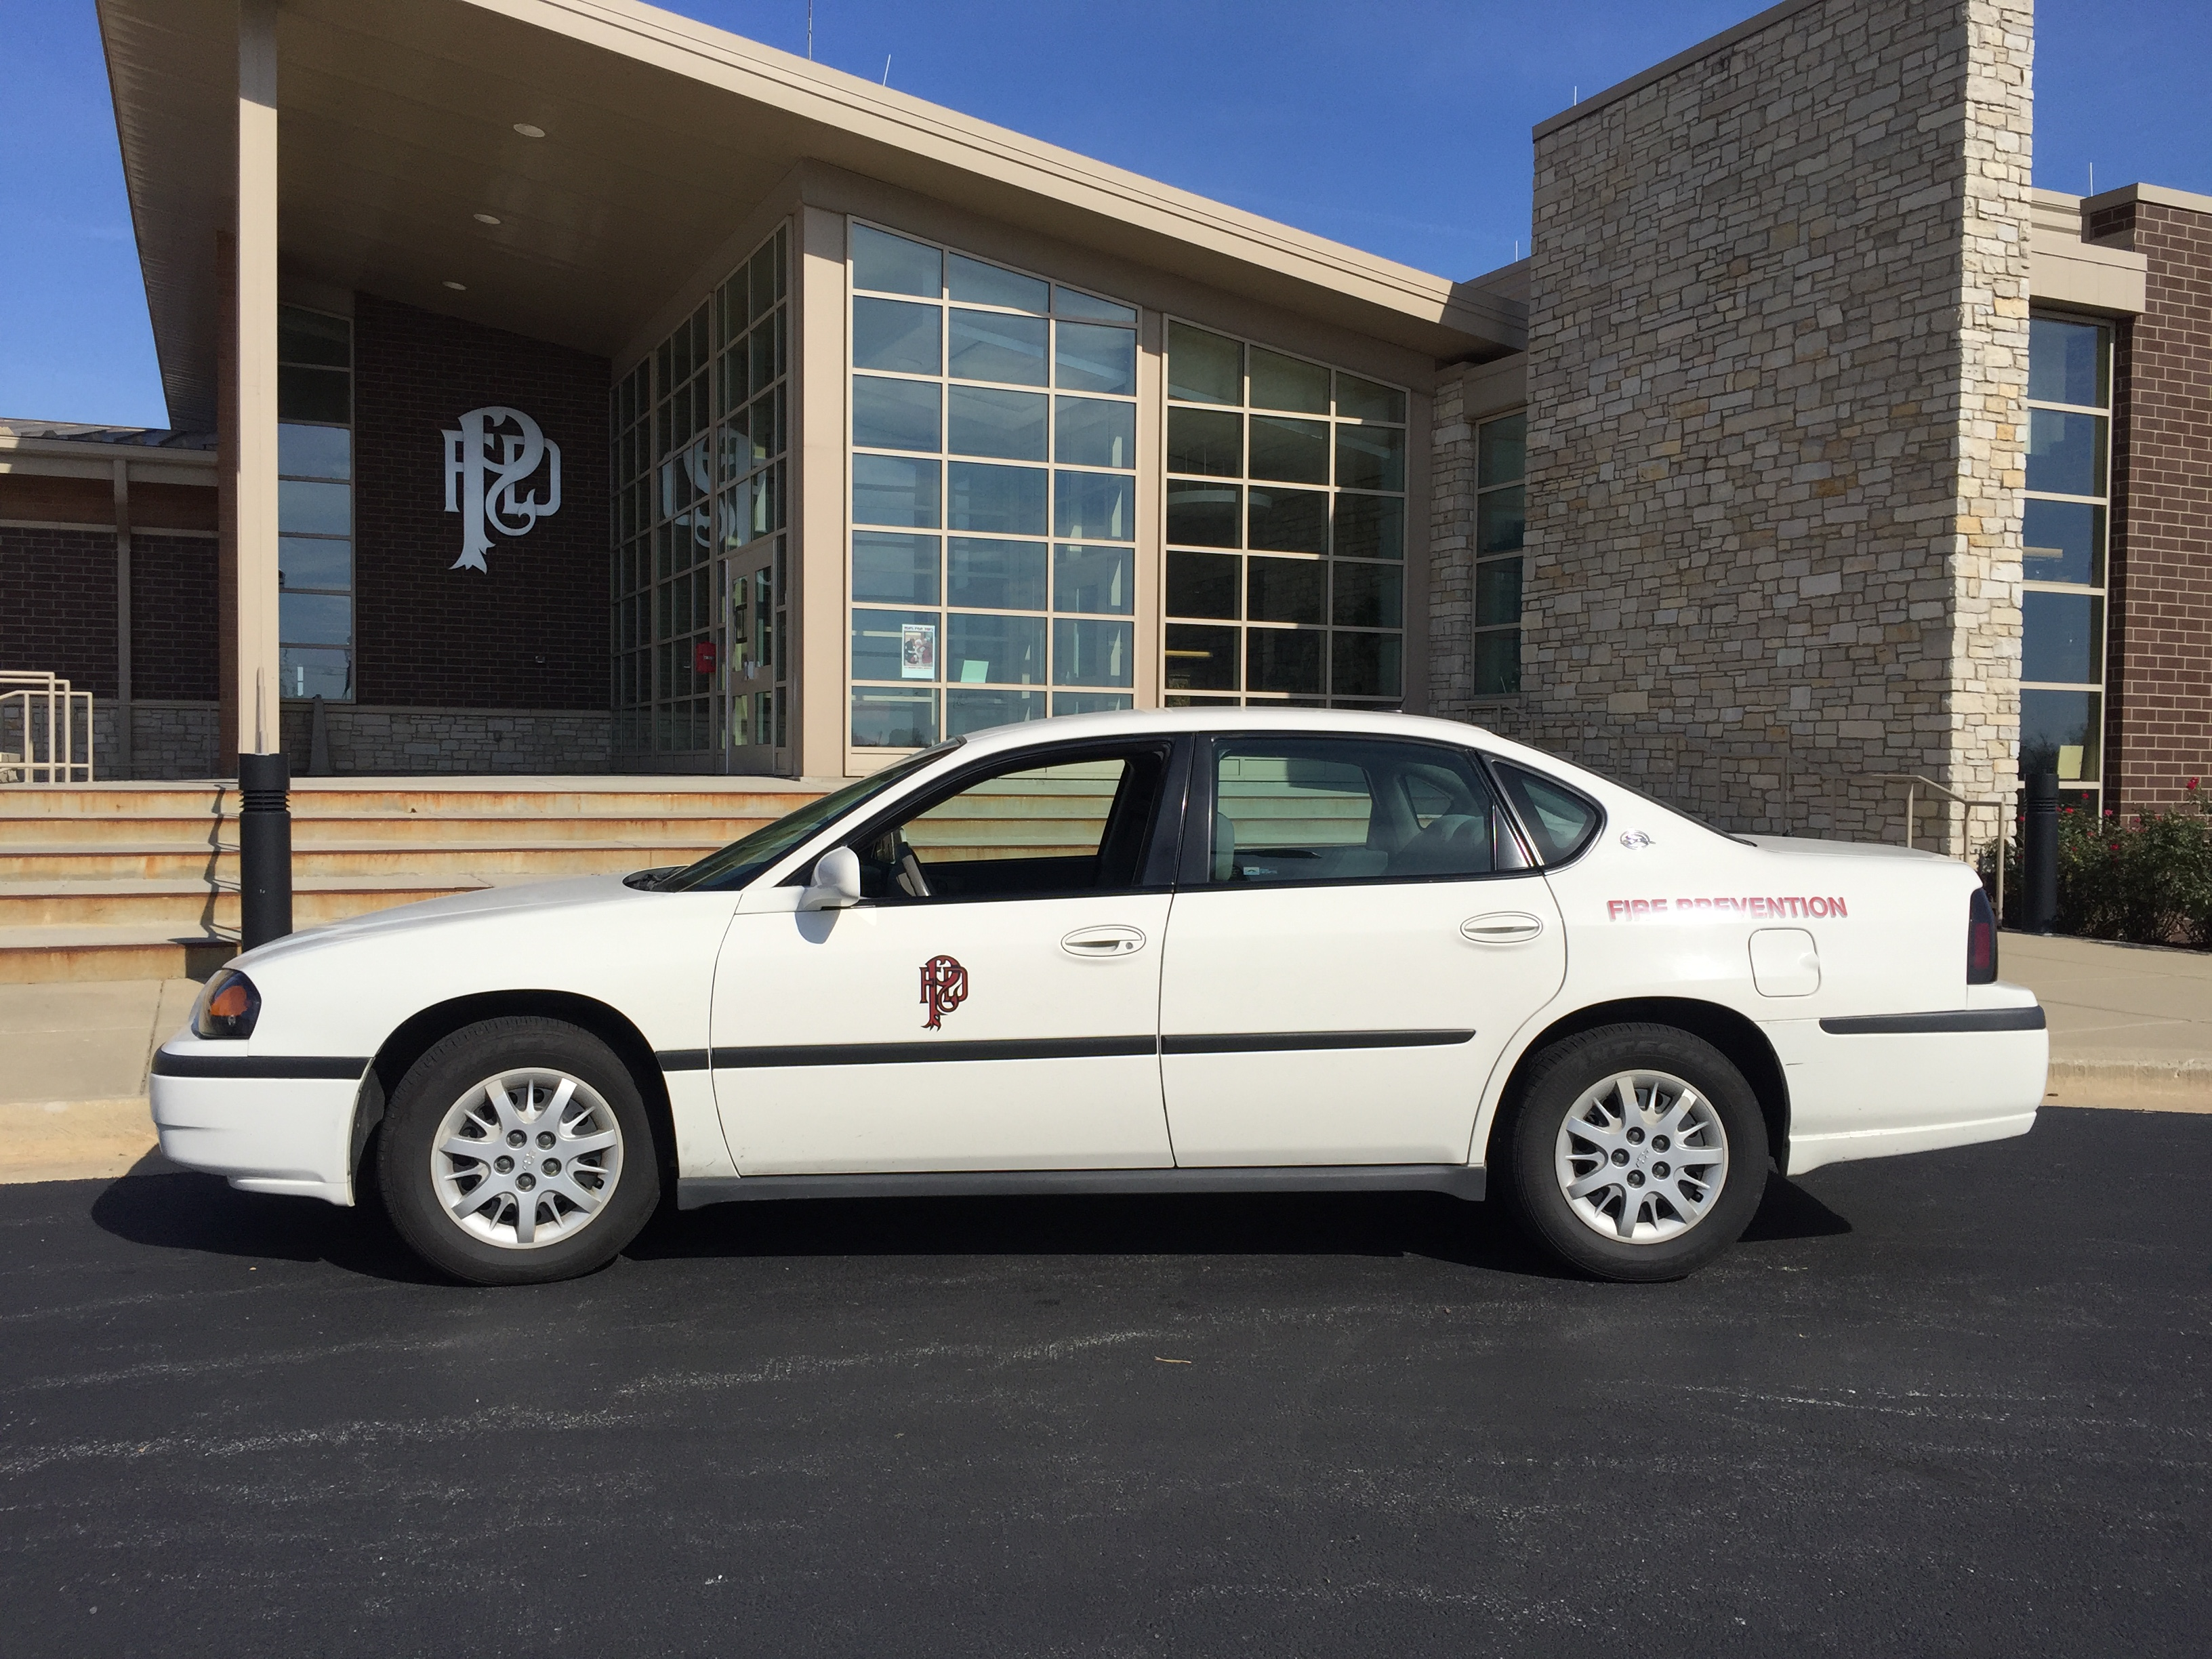 Fp2 2005 Chevy Impala Fire Prevention Plainfield Fire